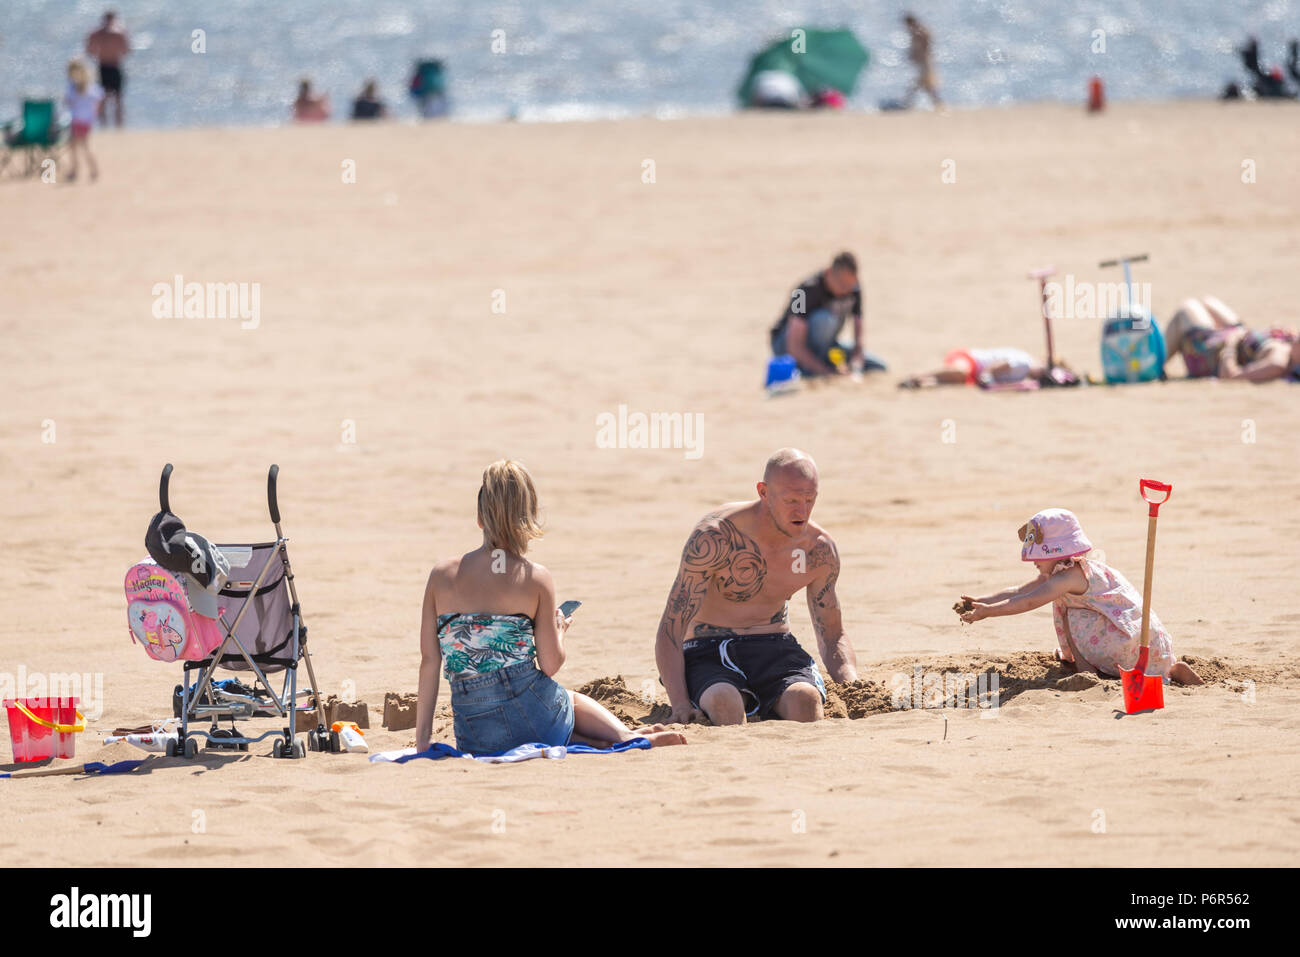 Skegness, UK, 2nd July 2018. Parents and children playing and sunbathing on the beach, enjoying the hot weather during a continued heatwave. Credit: Steven Booth/Alamy Live News Stock Photo